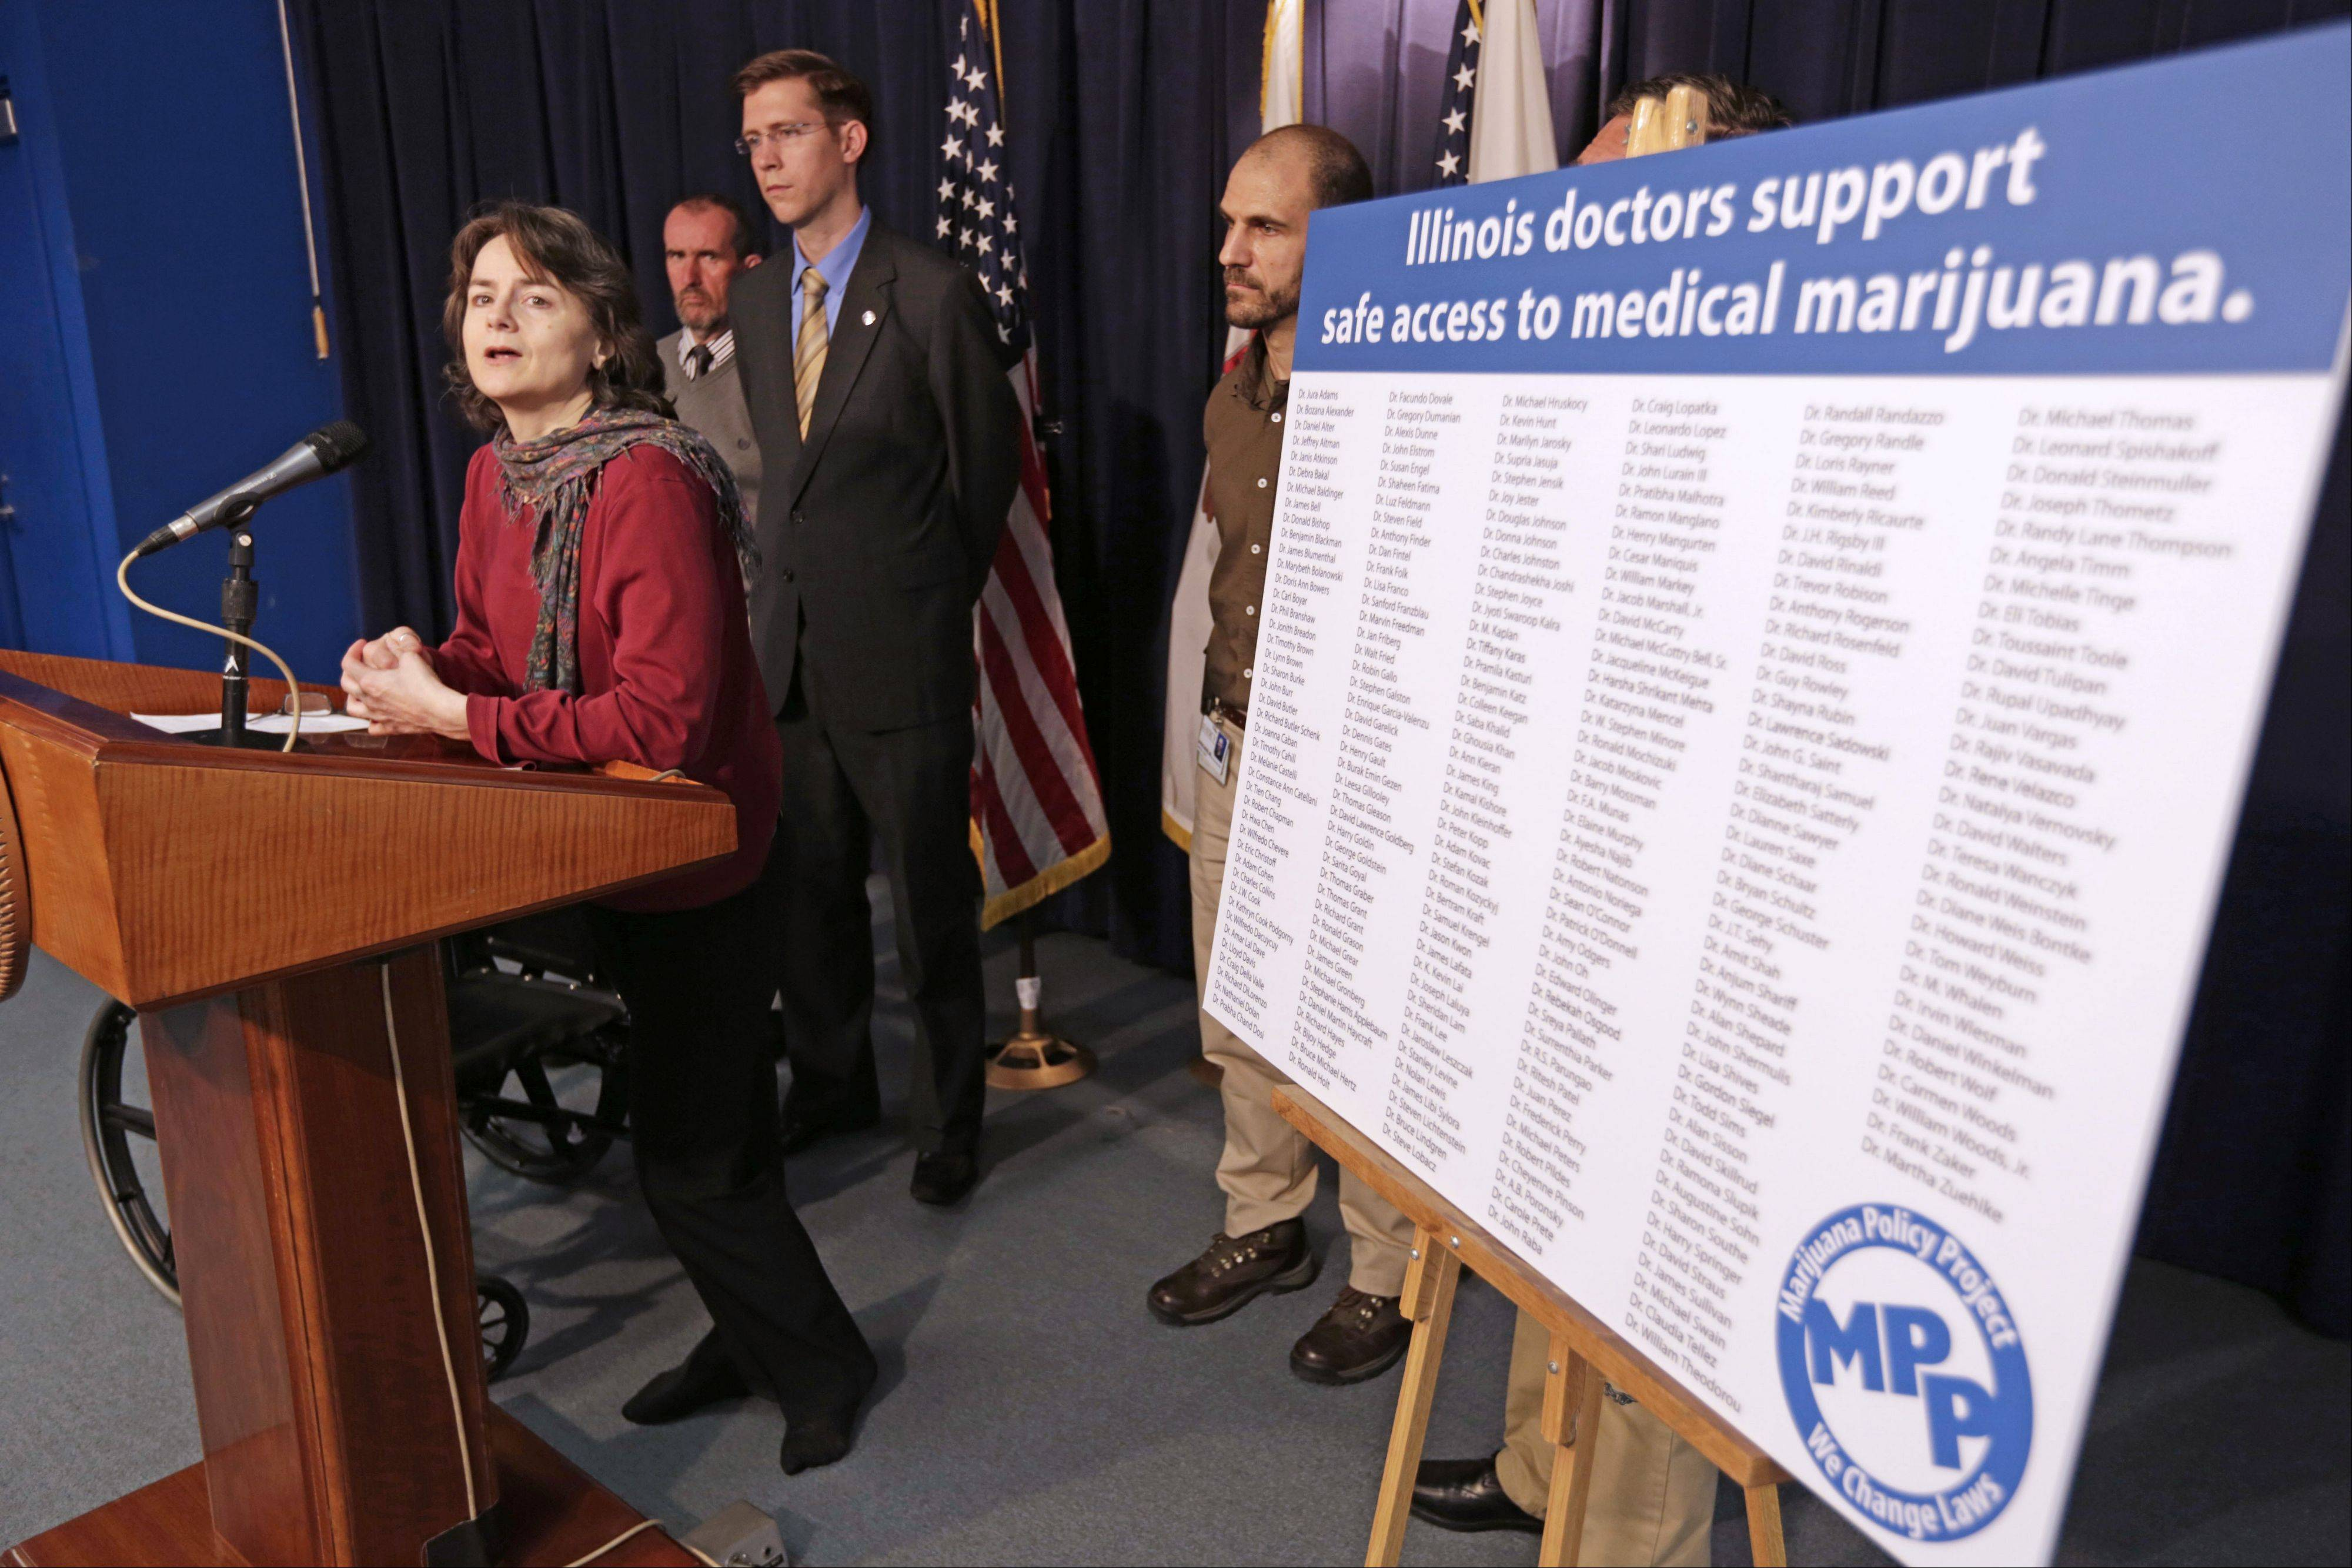 Julie Falco of Chicago speaks at a news conference held by the Marijuana Policy Project on Tuesday in Chicago. Falco uses marijuana to treat multiple sclerosis symptoms and says she and other patients shouldn't be considered criminals for trying to ease their suffering.